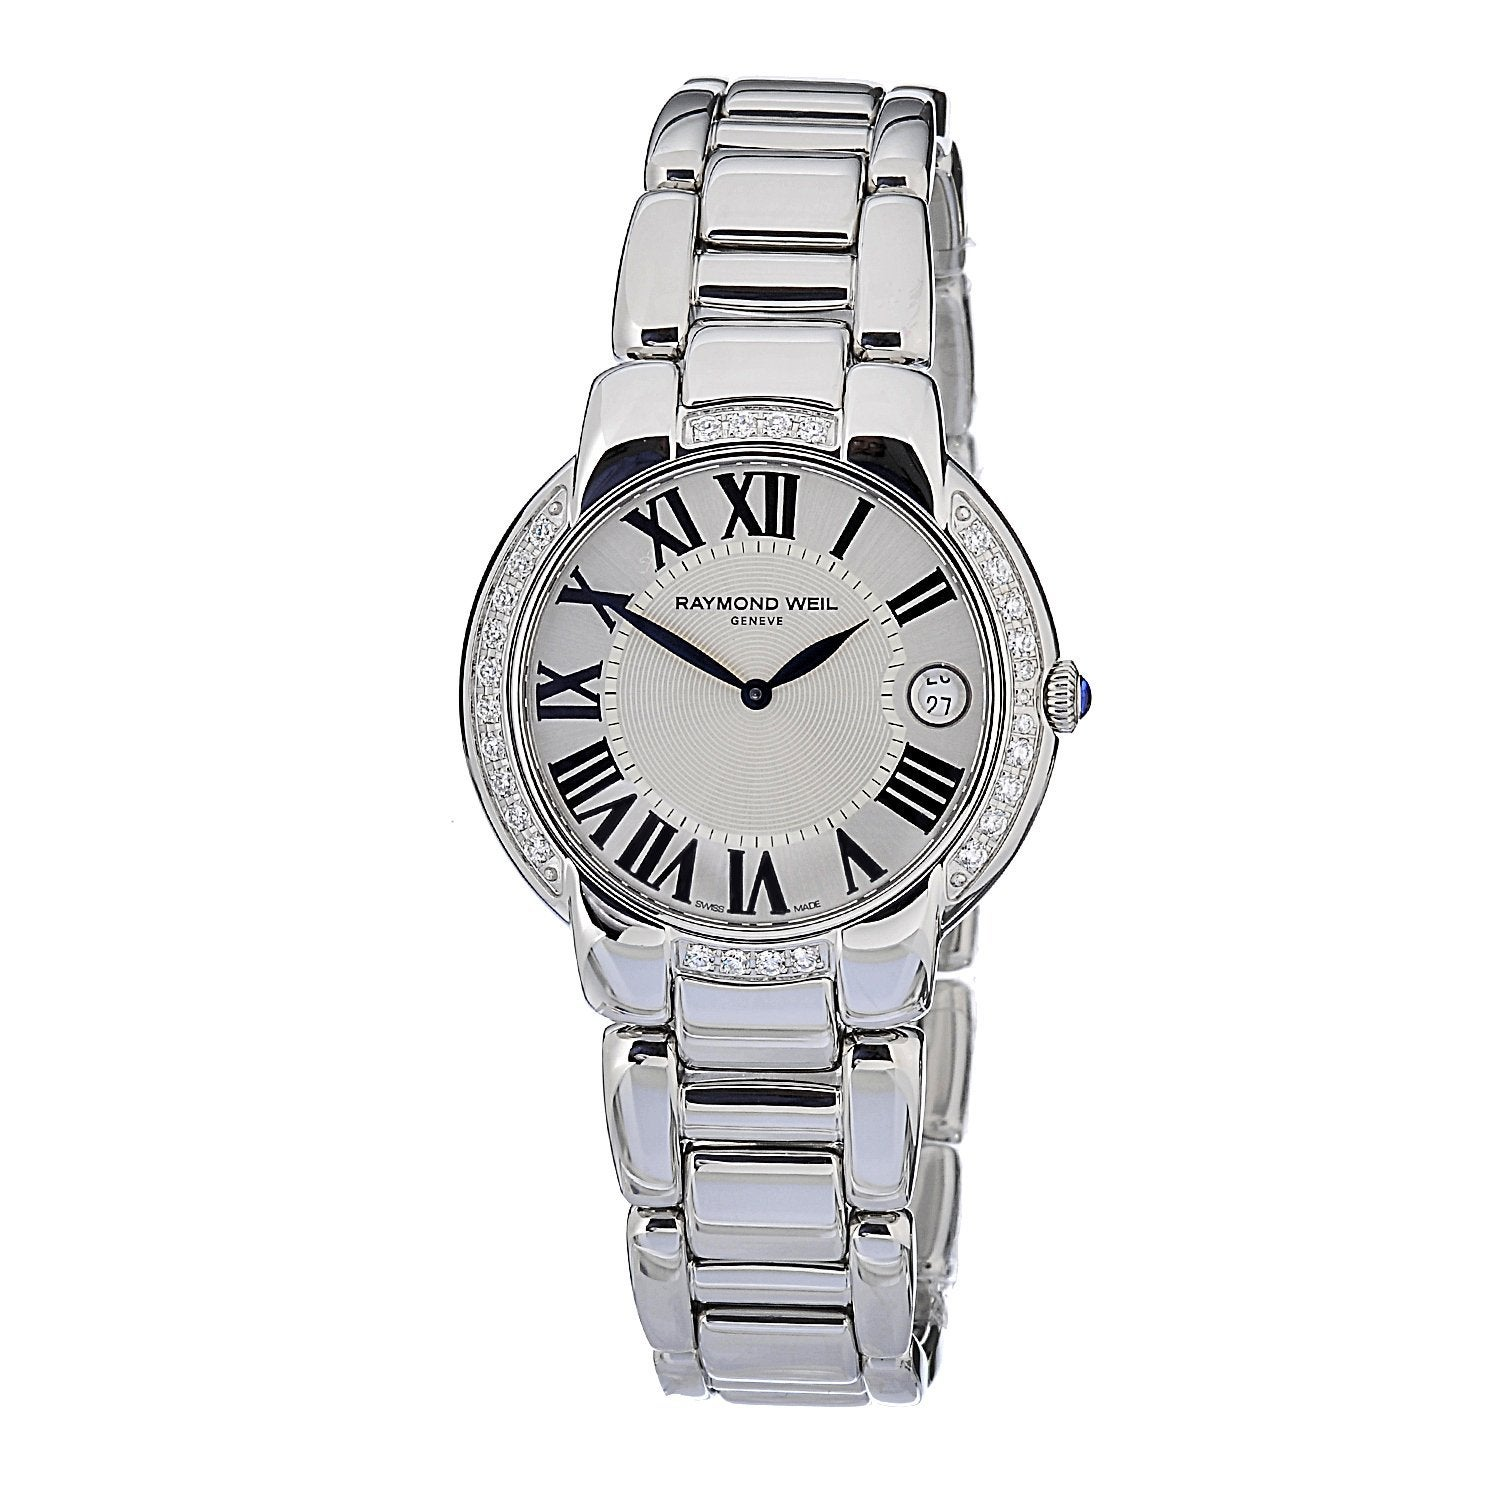 Raymond Weil Women's Jasmine Diamond Watch